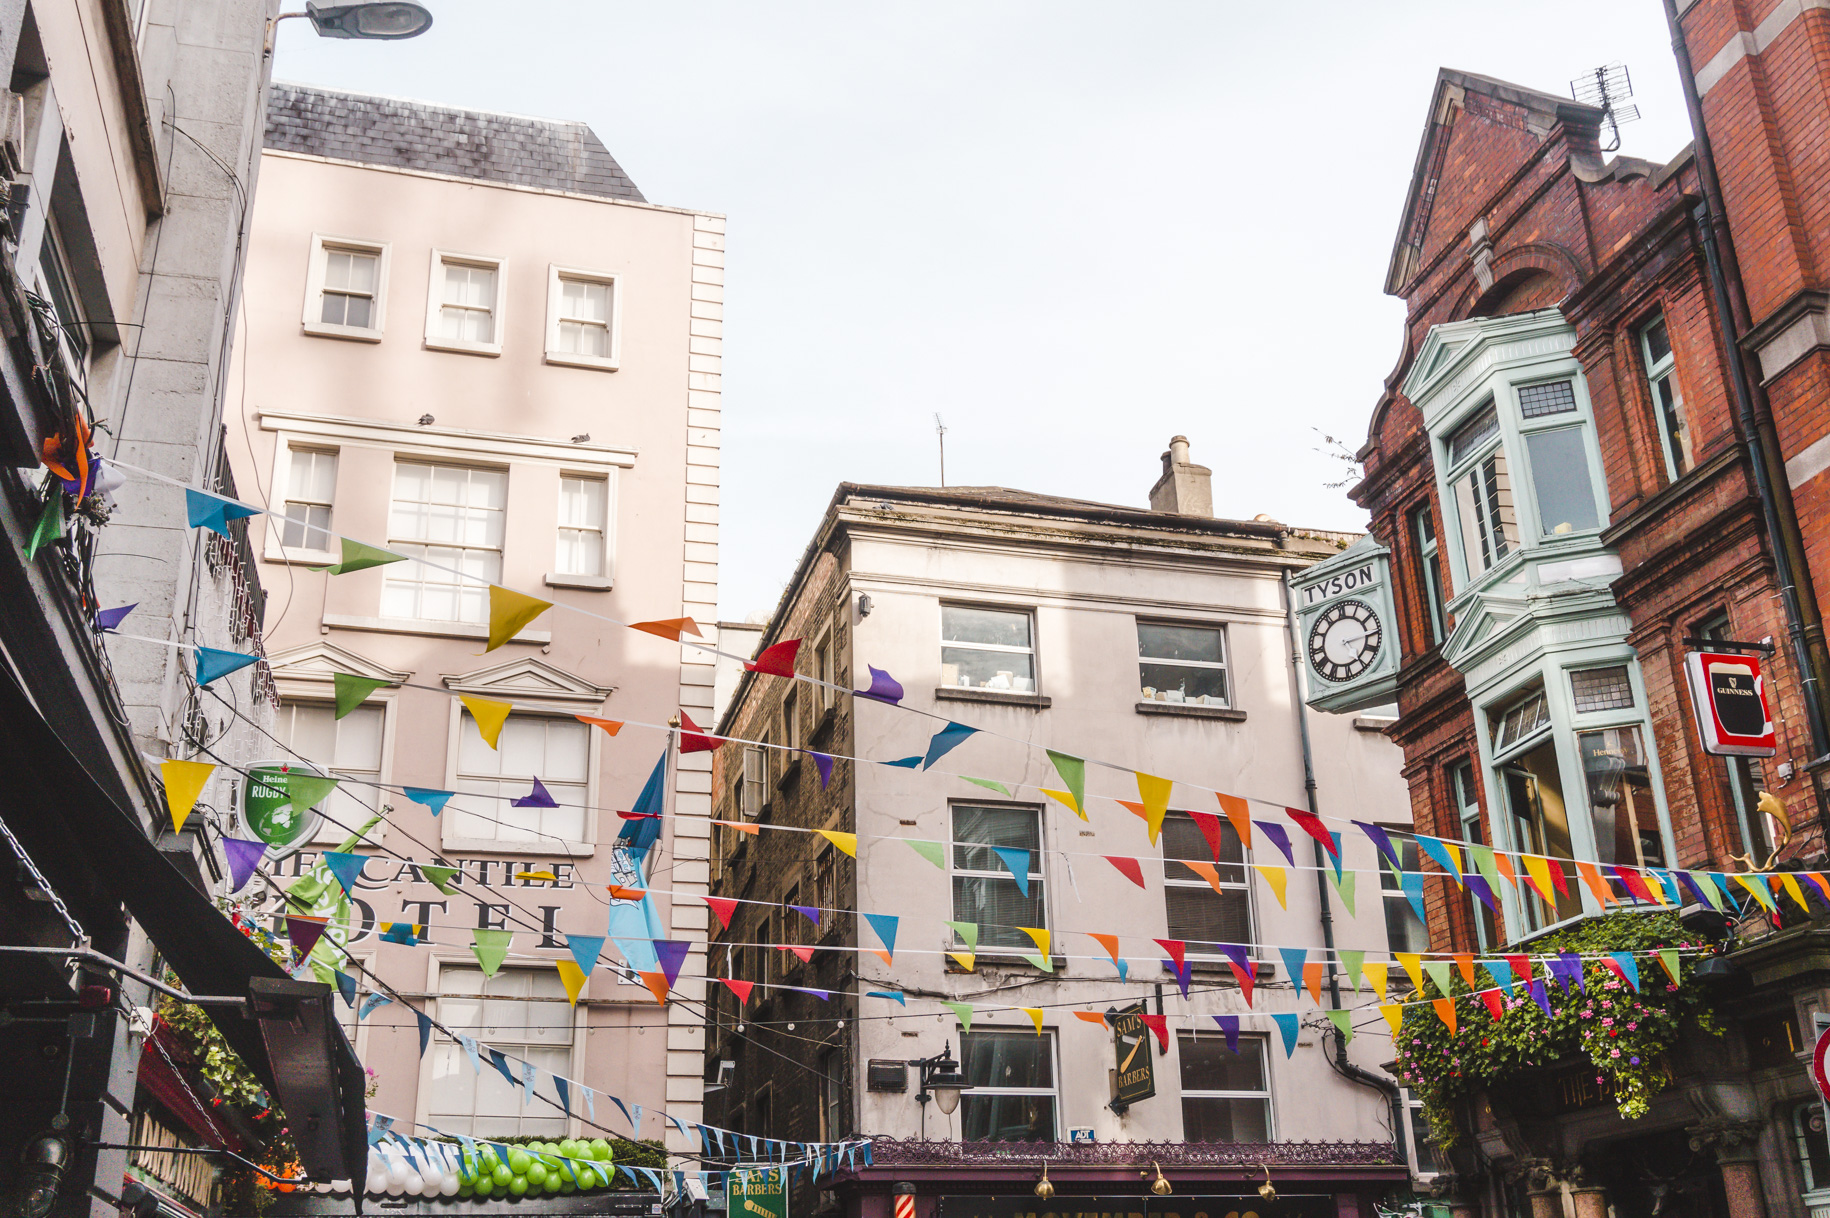 Colourful Dublin, Ireland. A great solo travel destination that needs to be added to your Europe itinerary.